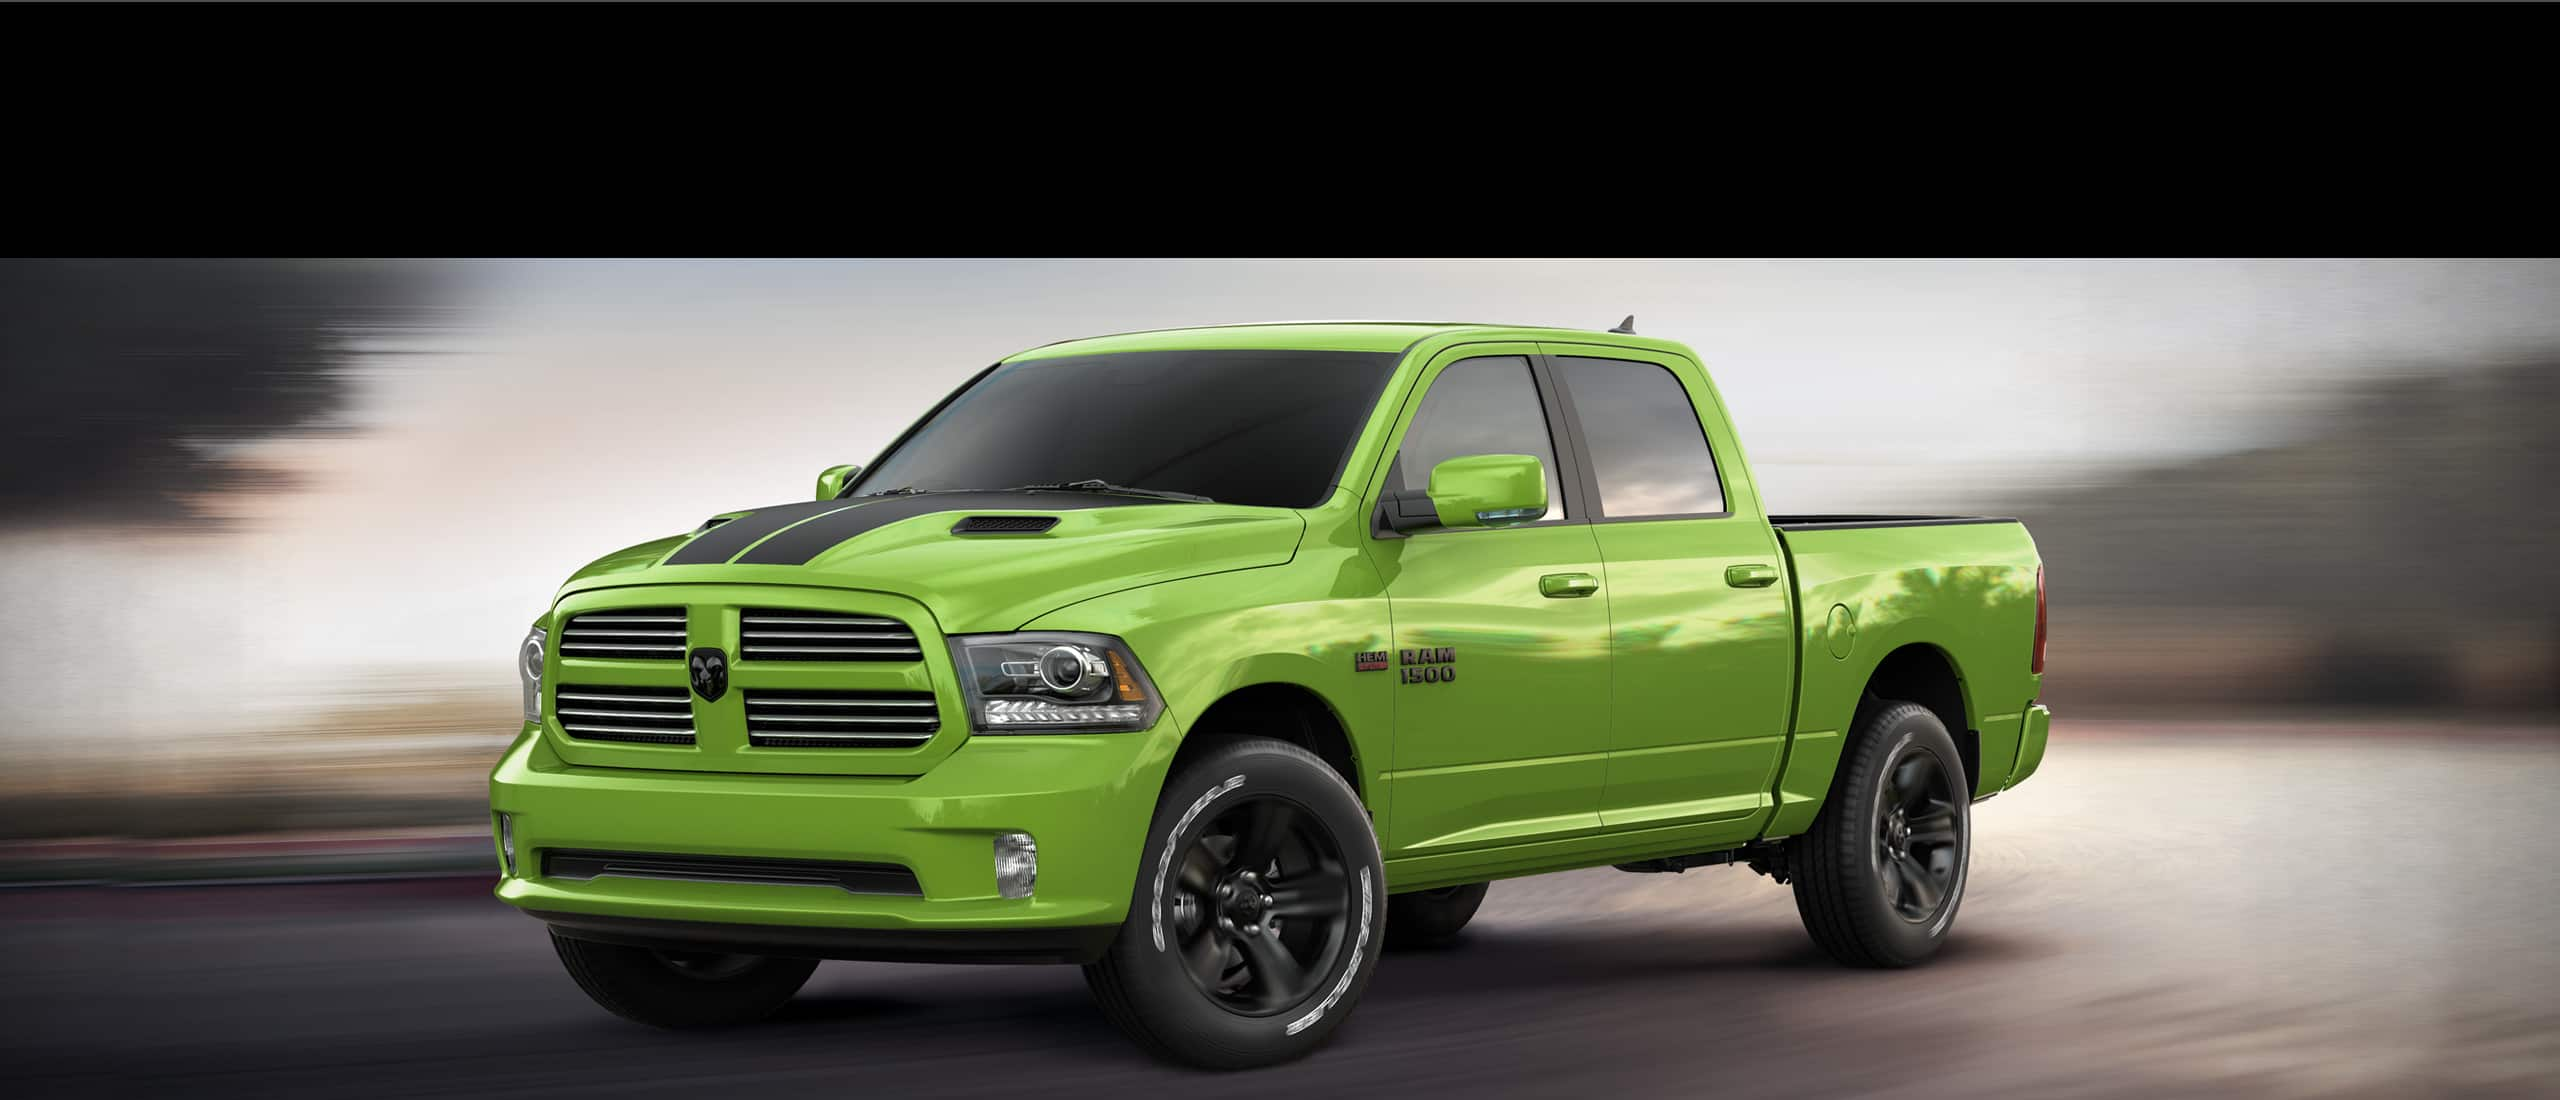 2017 Ram 1500 Sublime Green